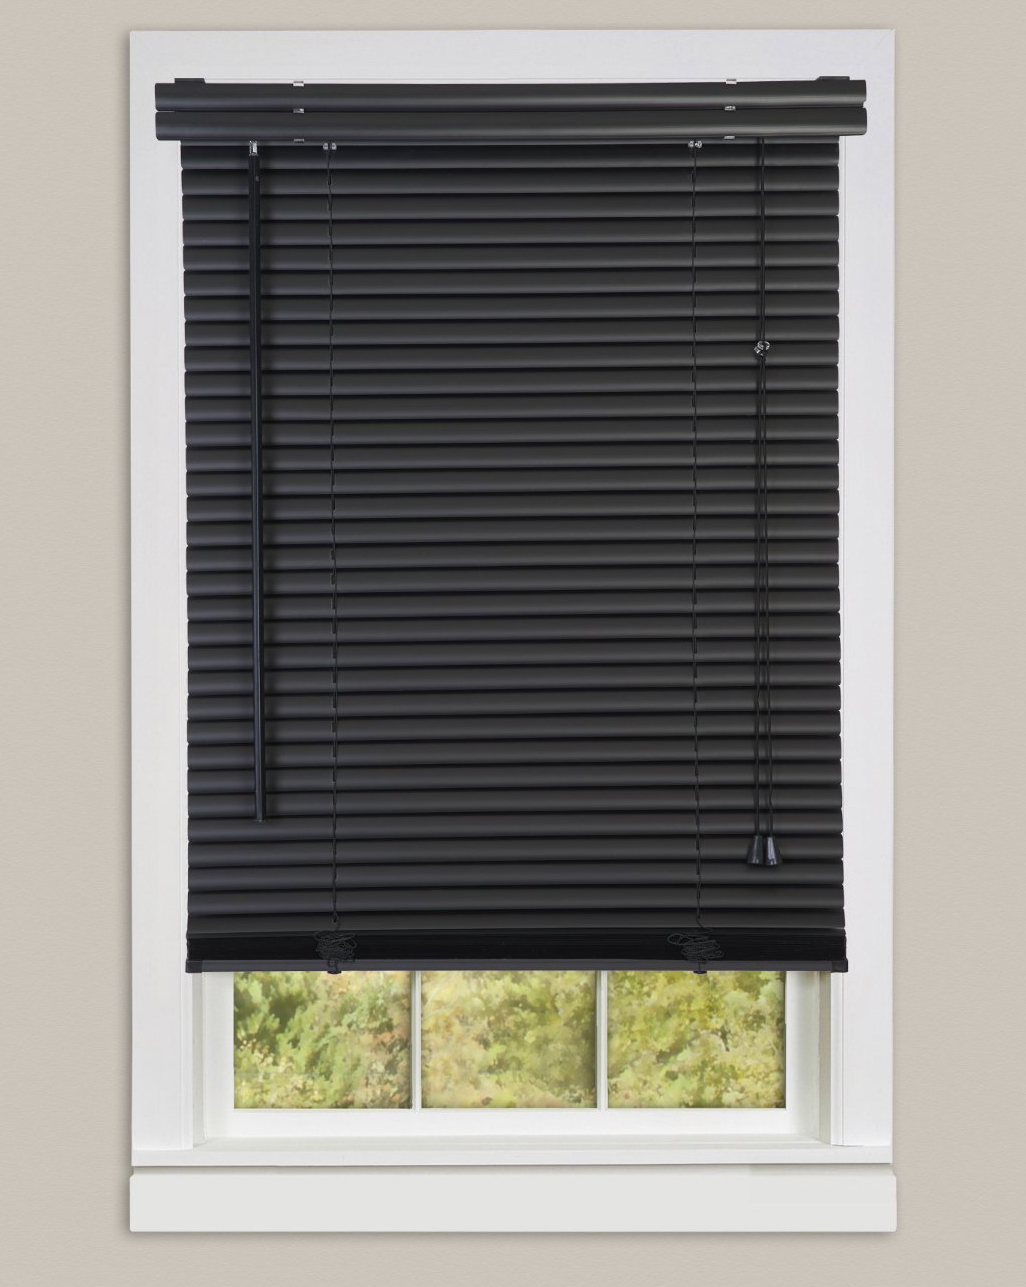 Window Blinds Mini Blinds 1  Slats Black Venetian Vinyl Blind : window blind - pezcame.com